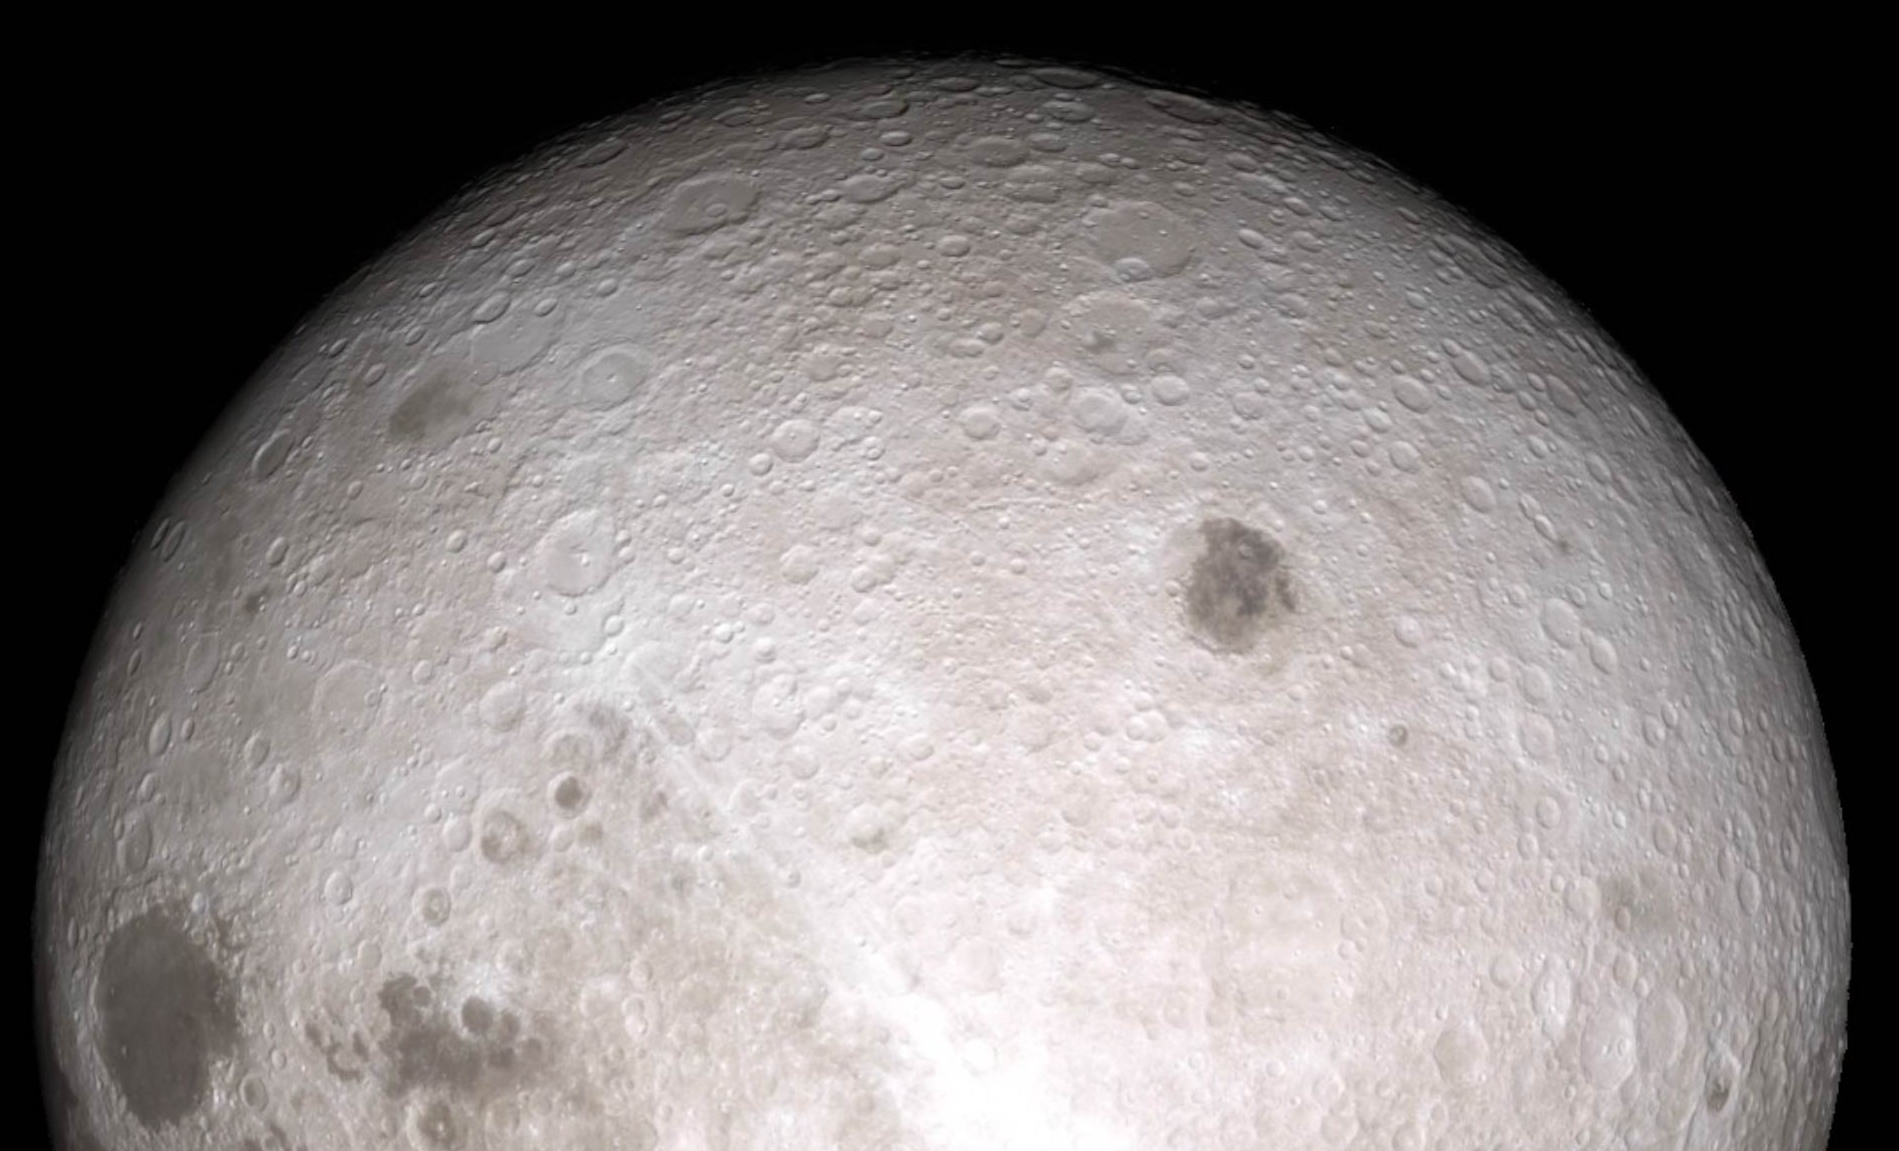 The best-ever image of the far side of the Moon.